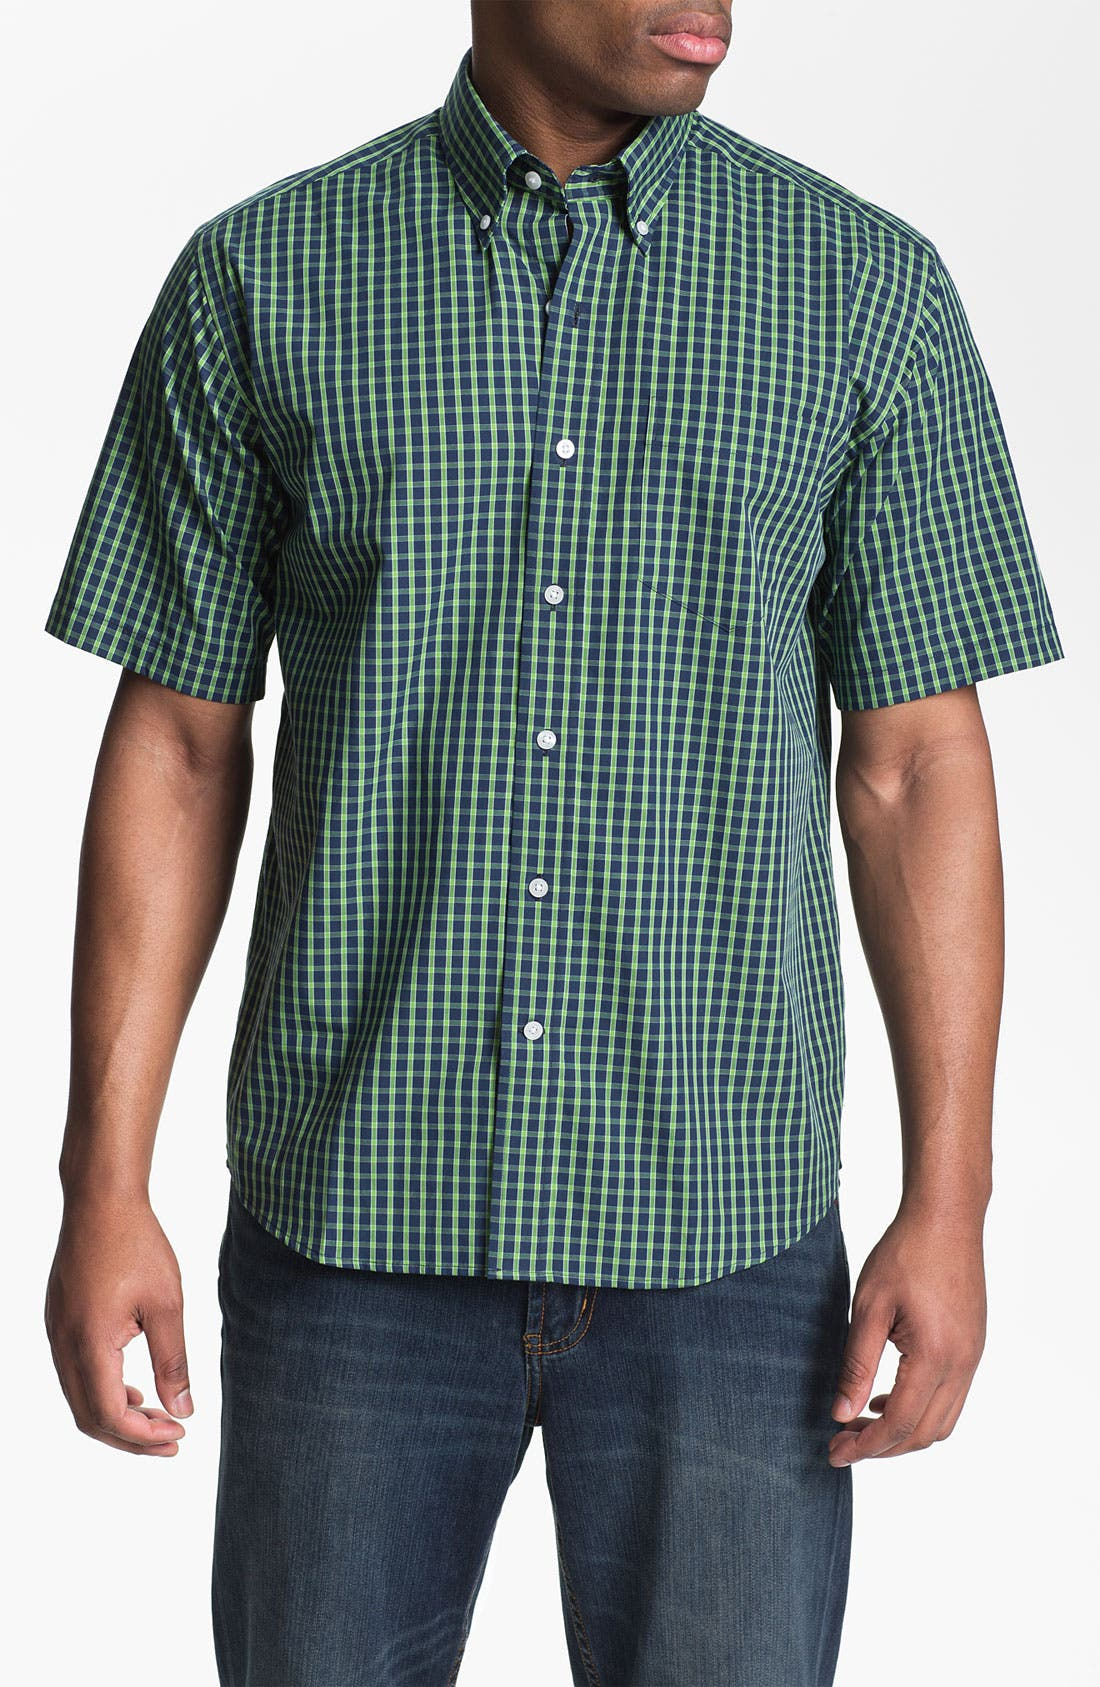 Alternate Image 1 Selected - Cutter & Buck 'Anders' Check Sport Shirt (Big & Tall)